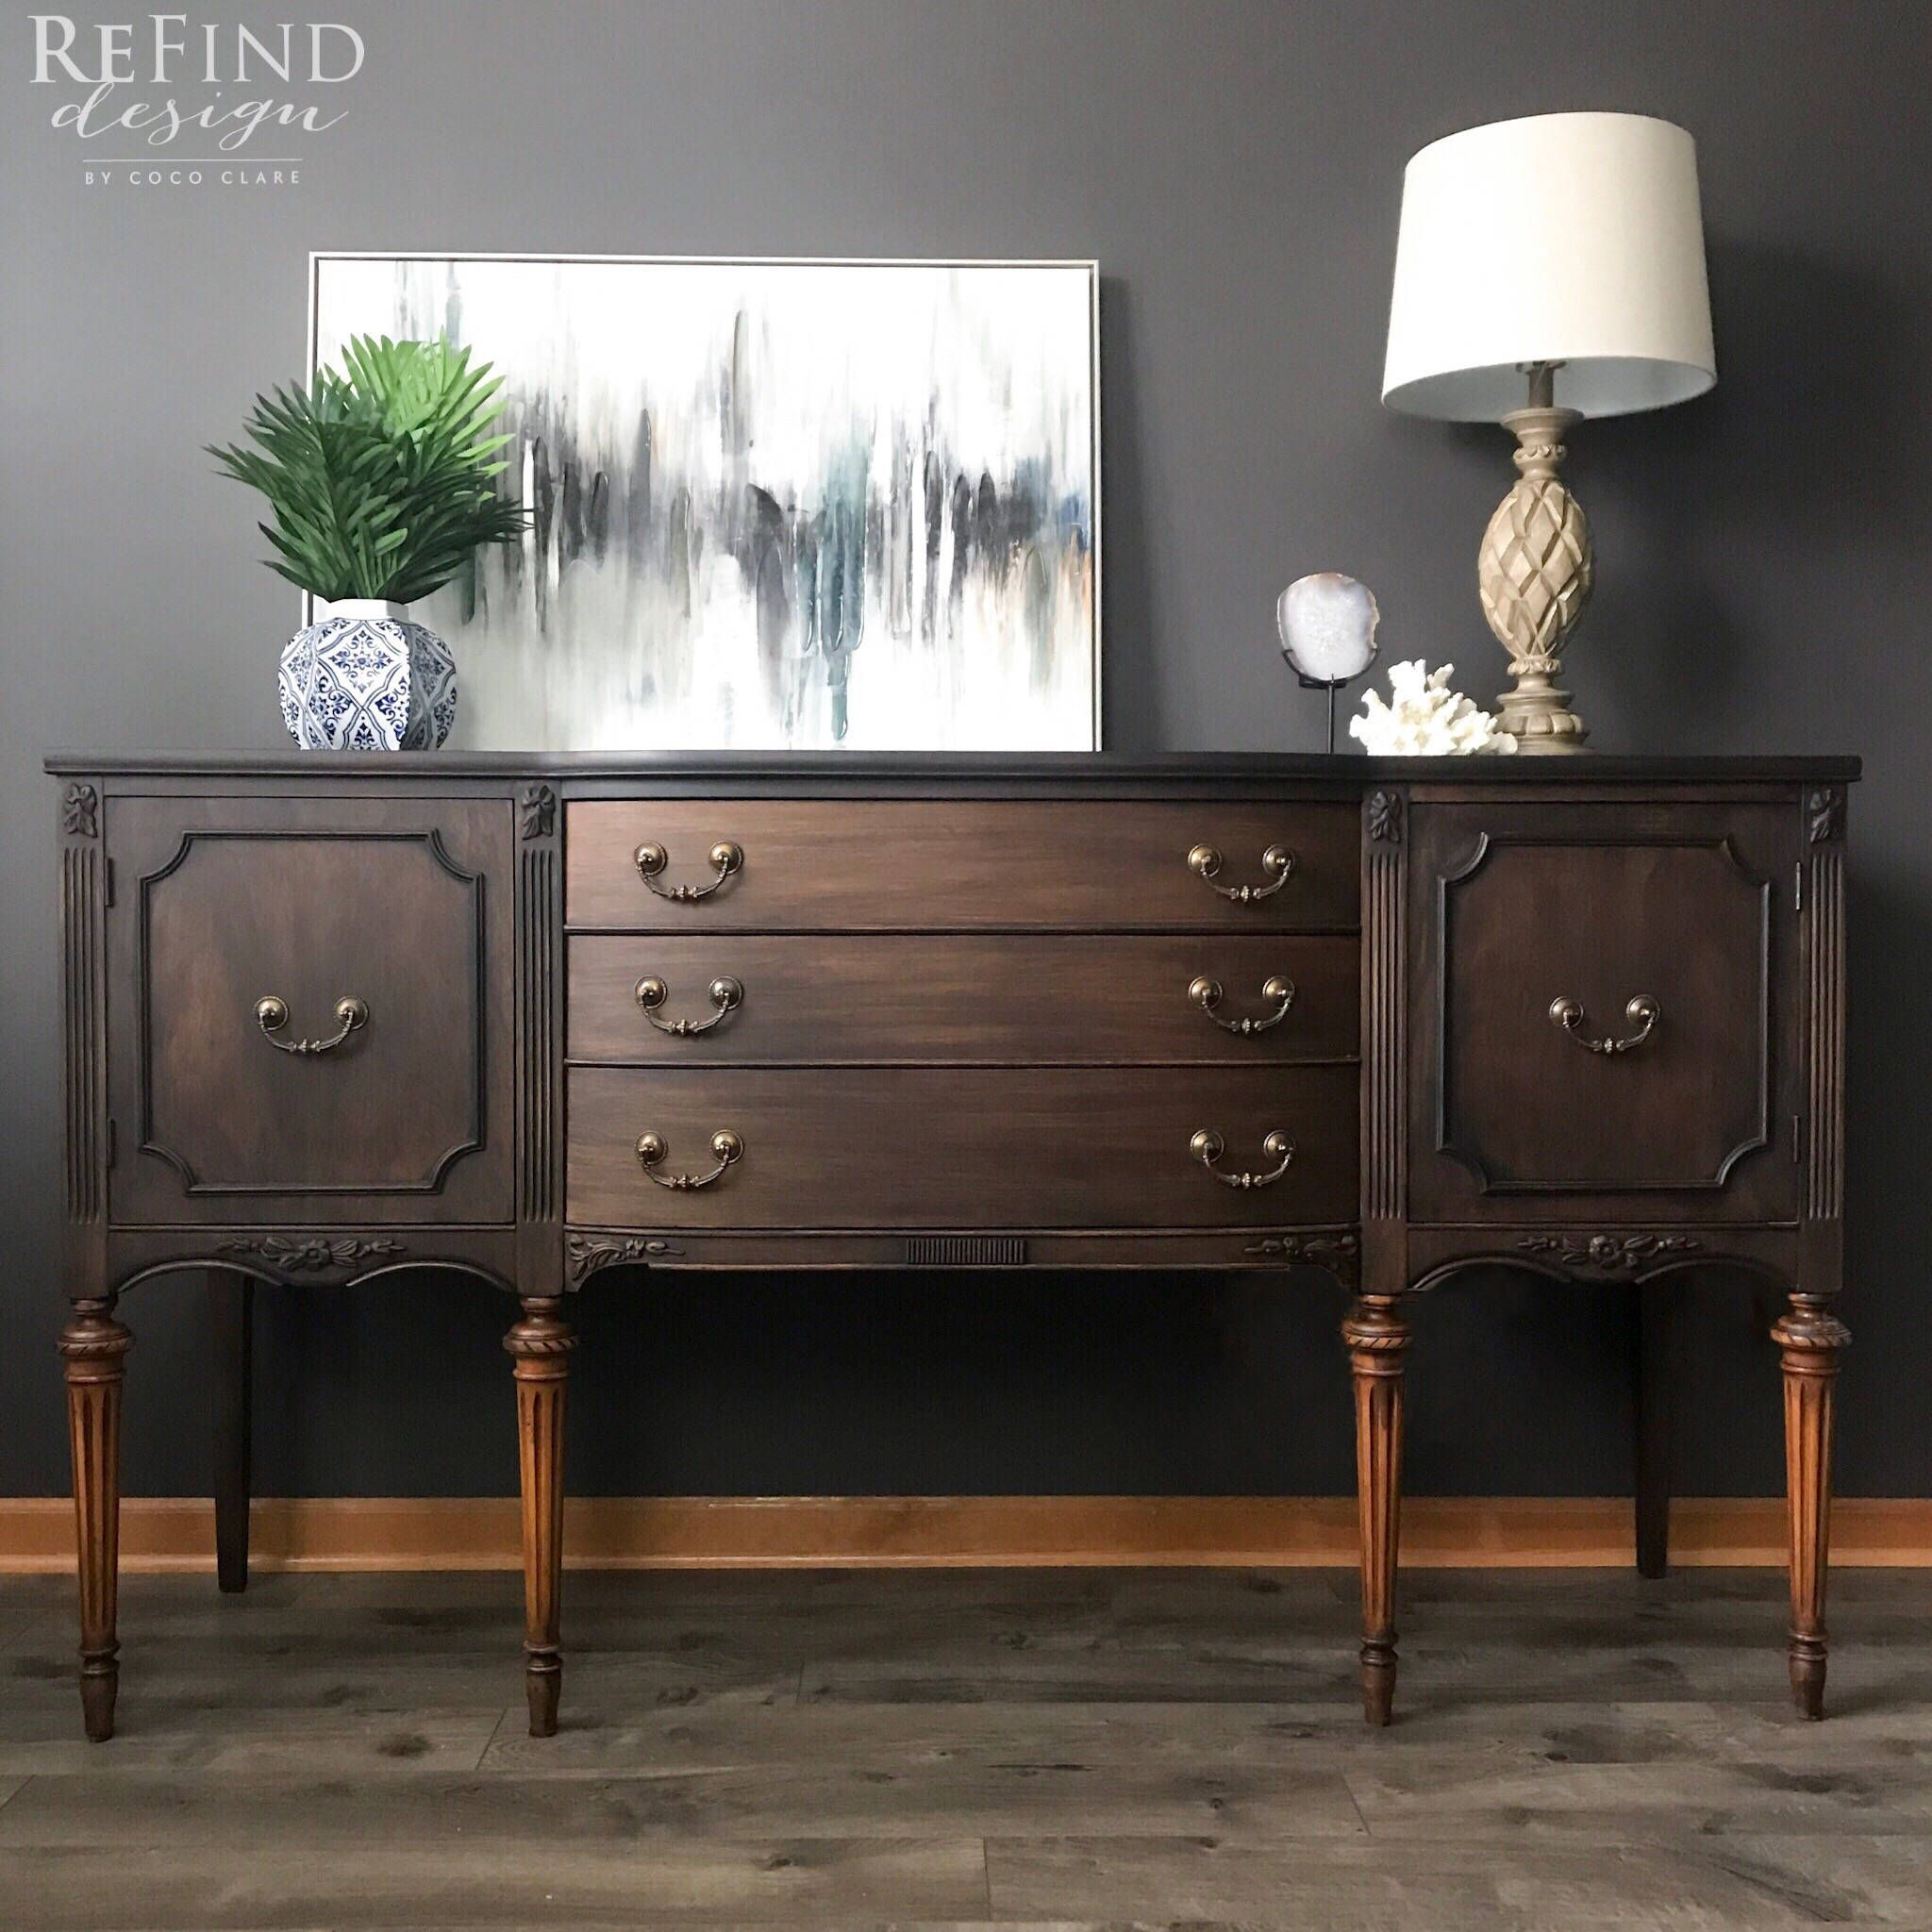 Sold Vintage Traditional Buffet Black Modern Sideboard Dining